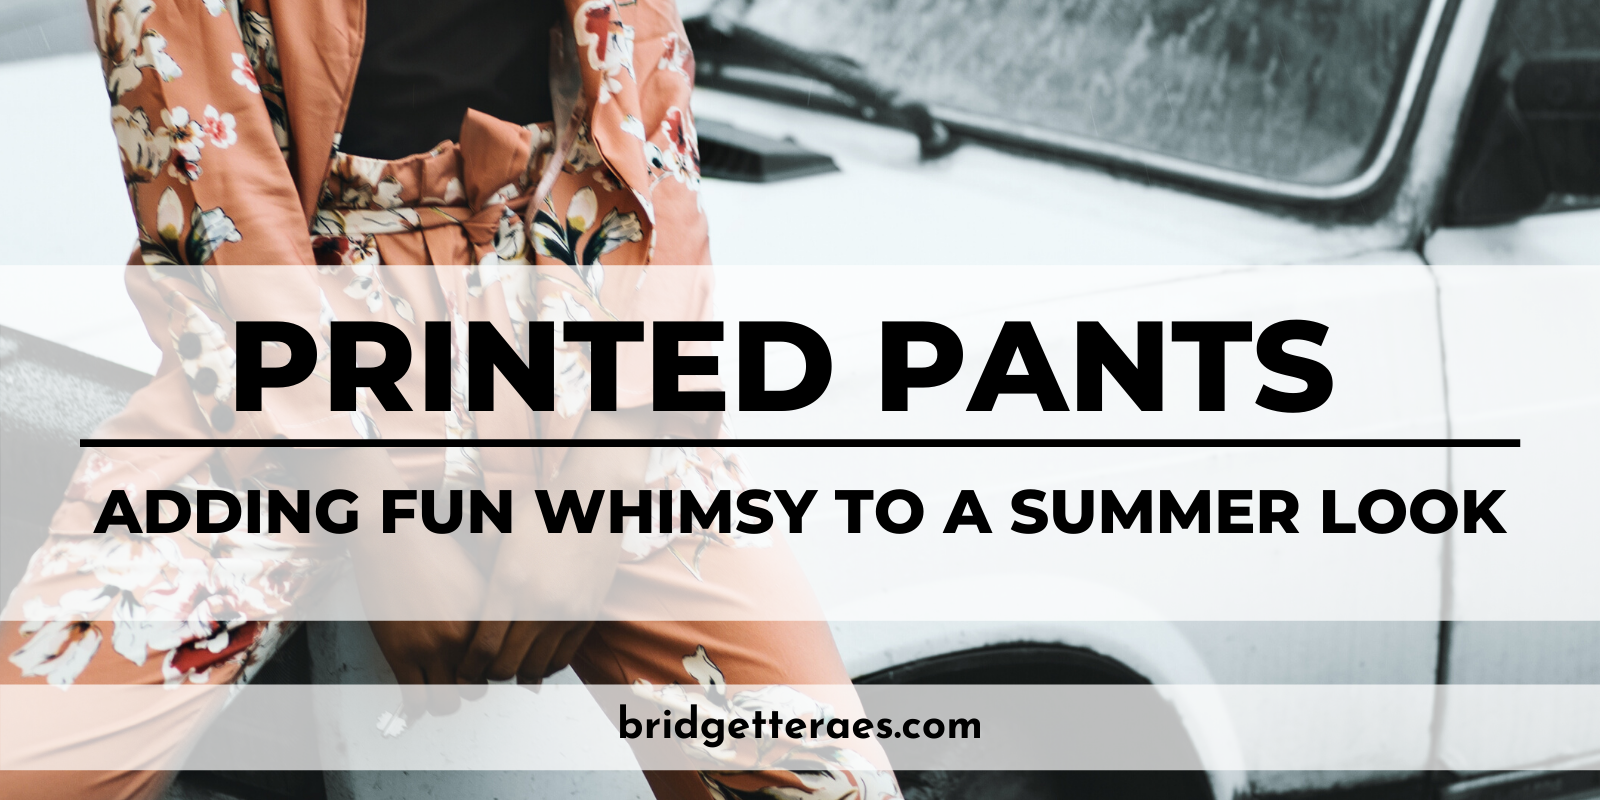 Printed Pants: Adding Fun Whimsy to a Summer Look